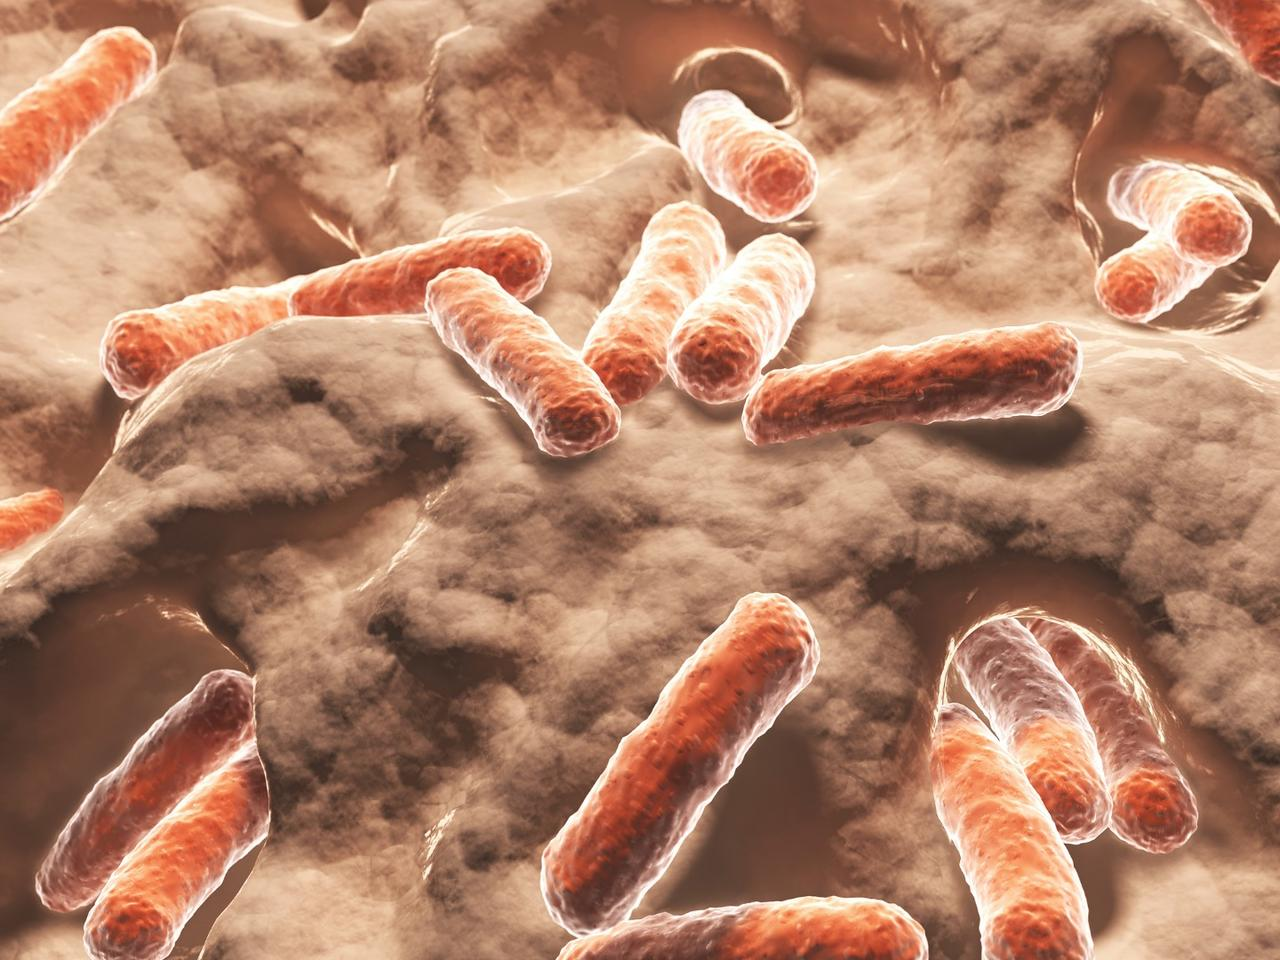 Researchers havediscovered the immune system can directly alter populations of certain bacteria in the gut that affect how dietary fats are absorbed